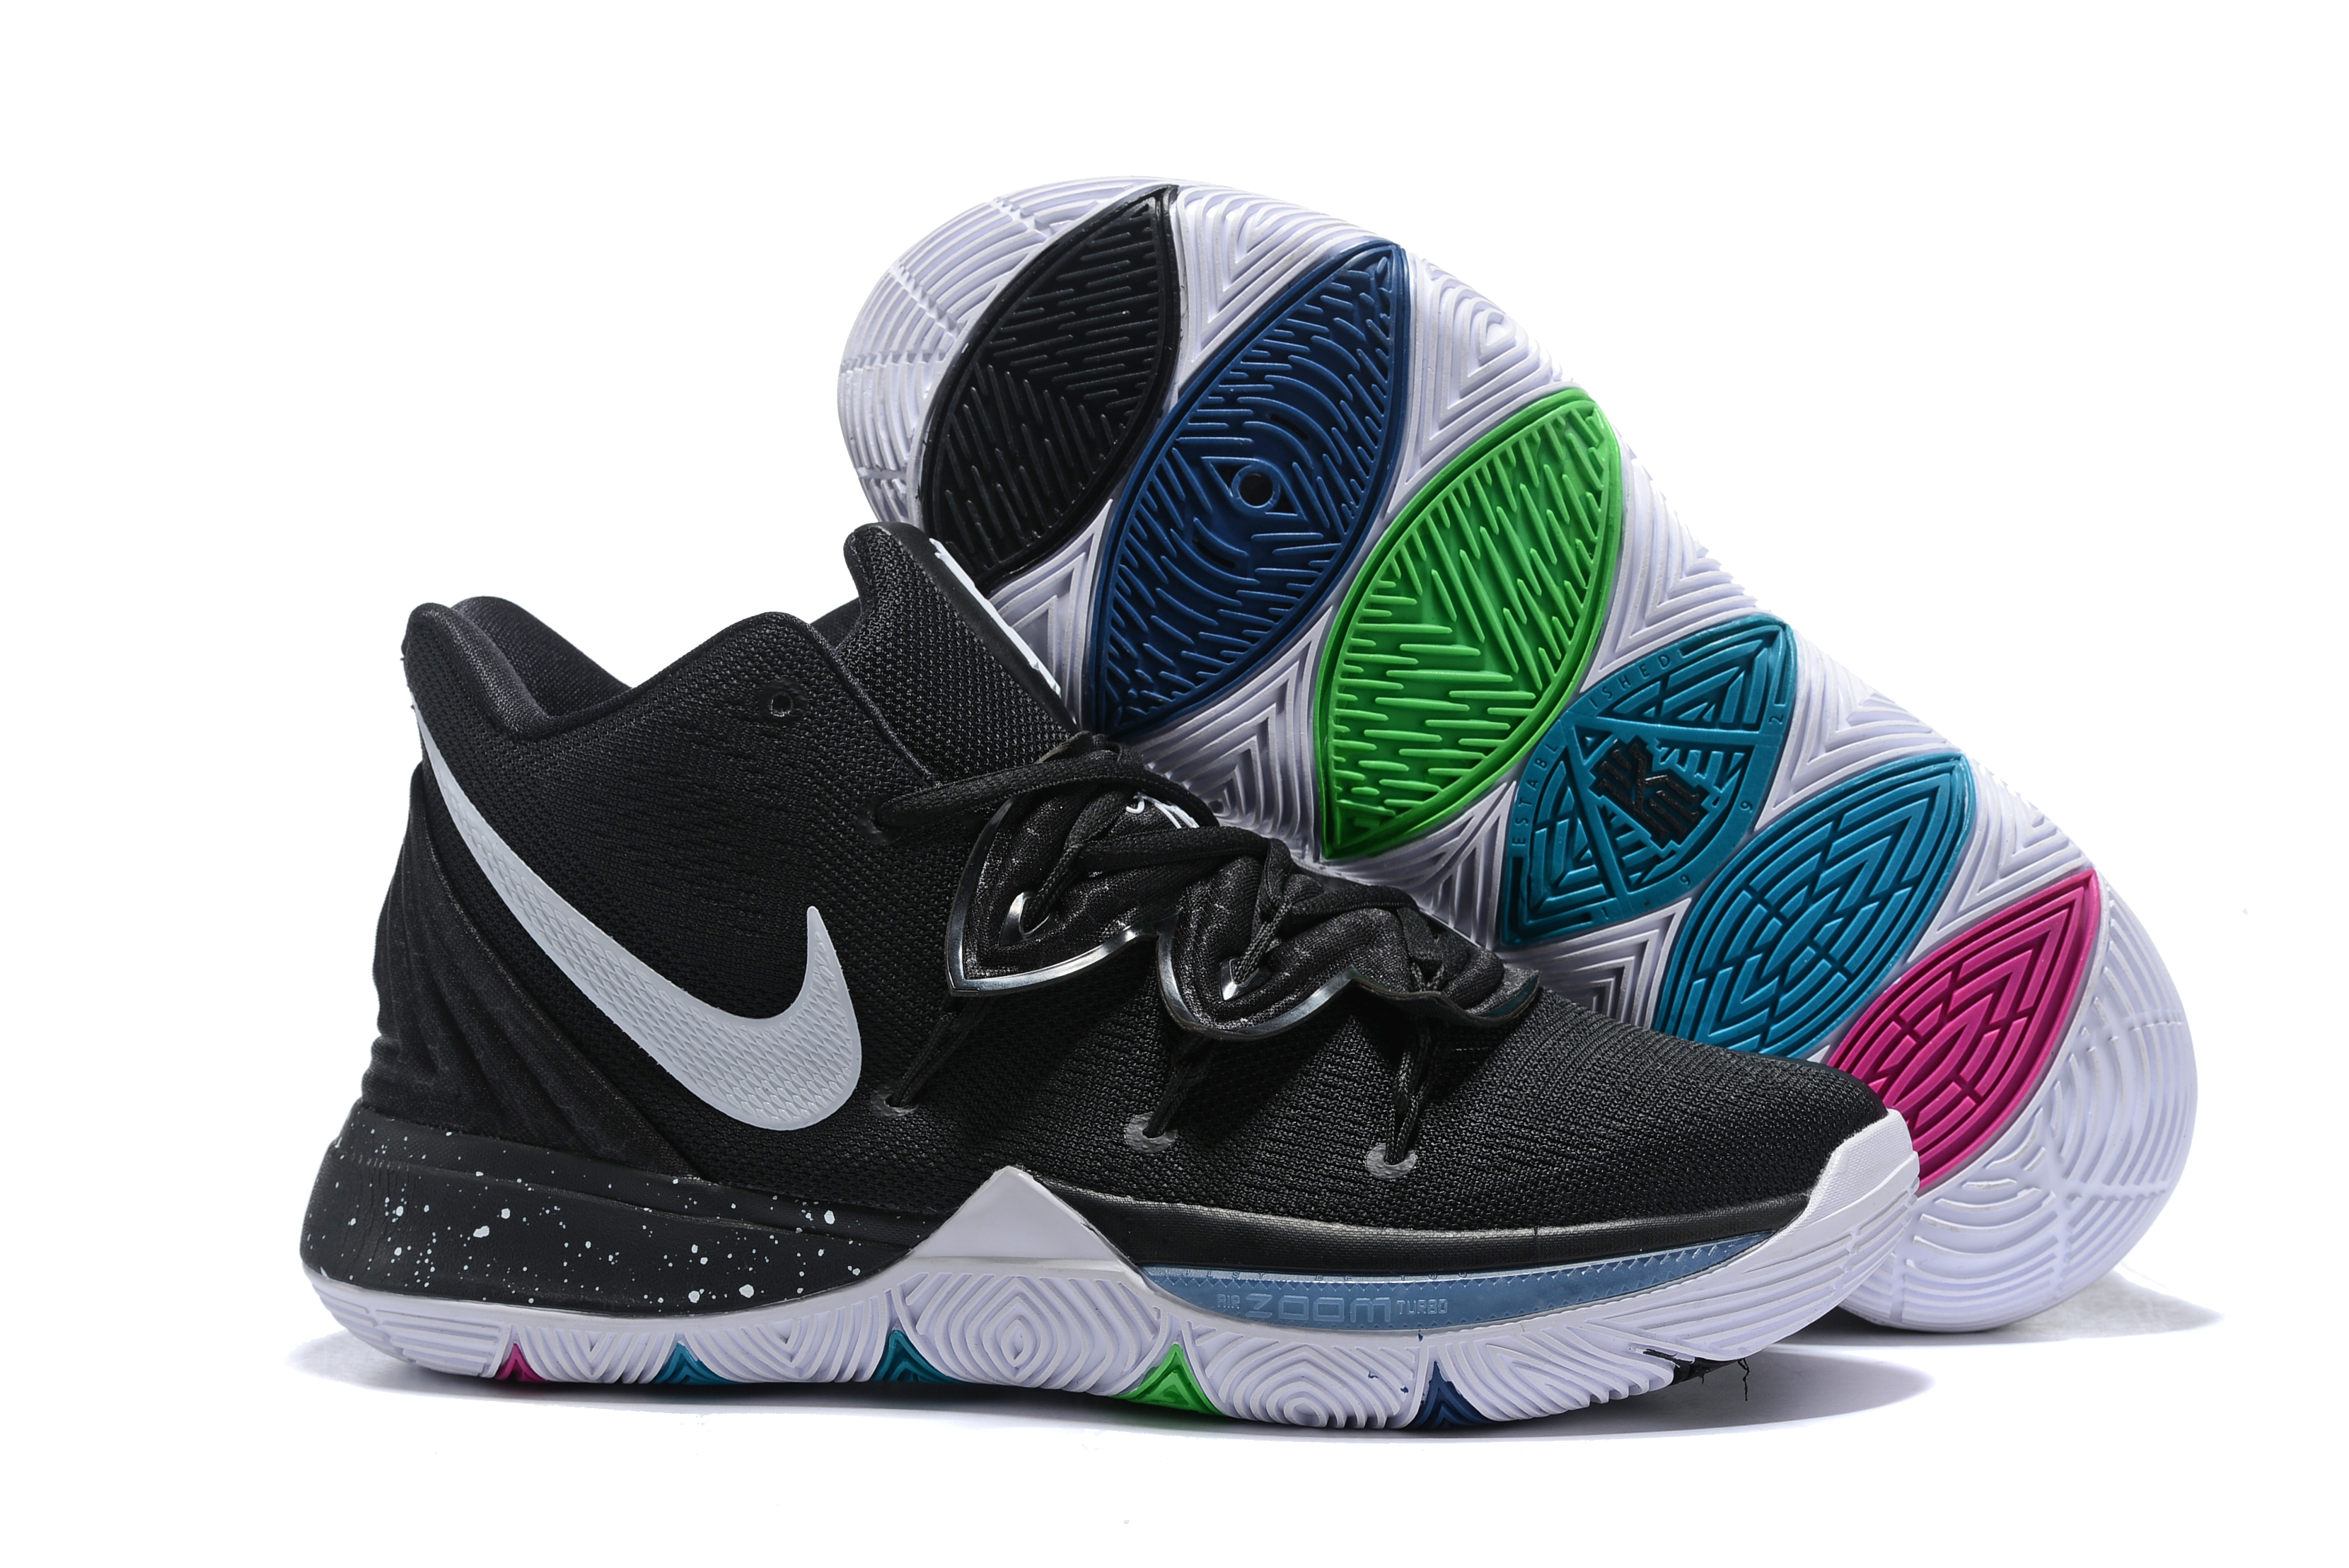 Kids Nike Kyrie 5 Black White Shoes